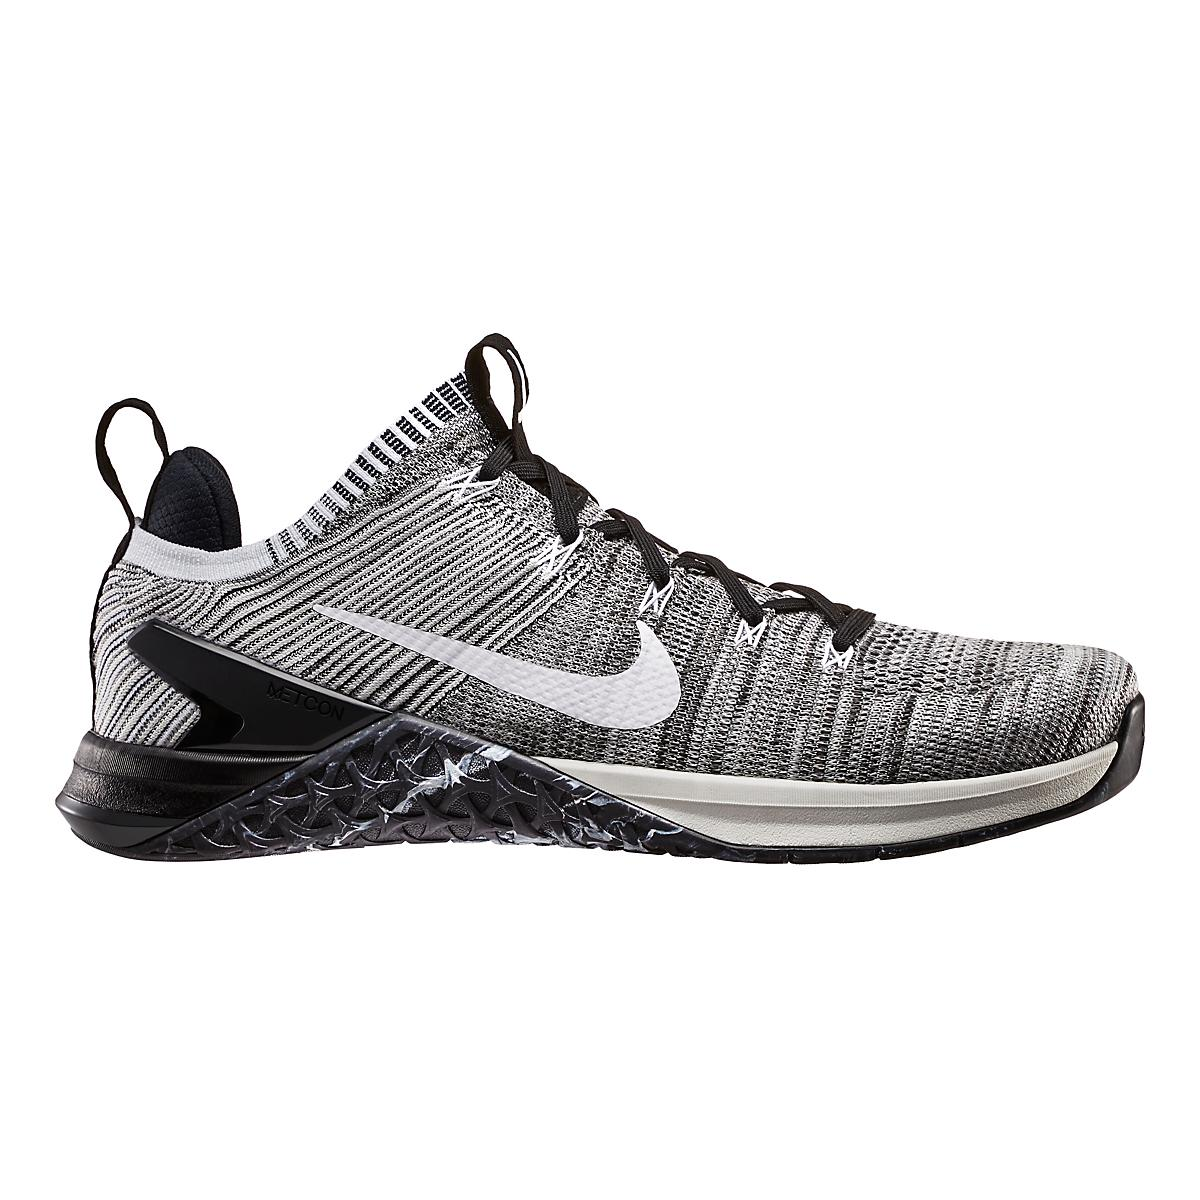 the best attitude 82066 0cc07 ... low price mens nike metcon dsx flyknit 2 cross training shoe at road  runner sports 45224